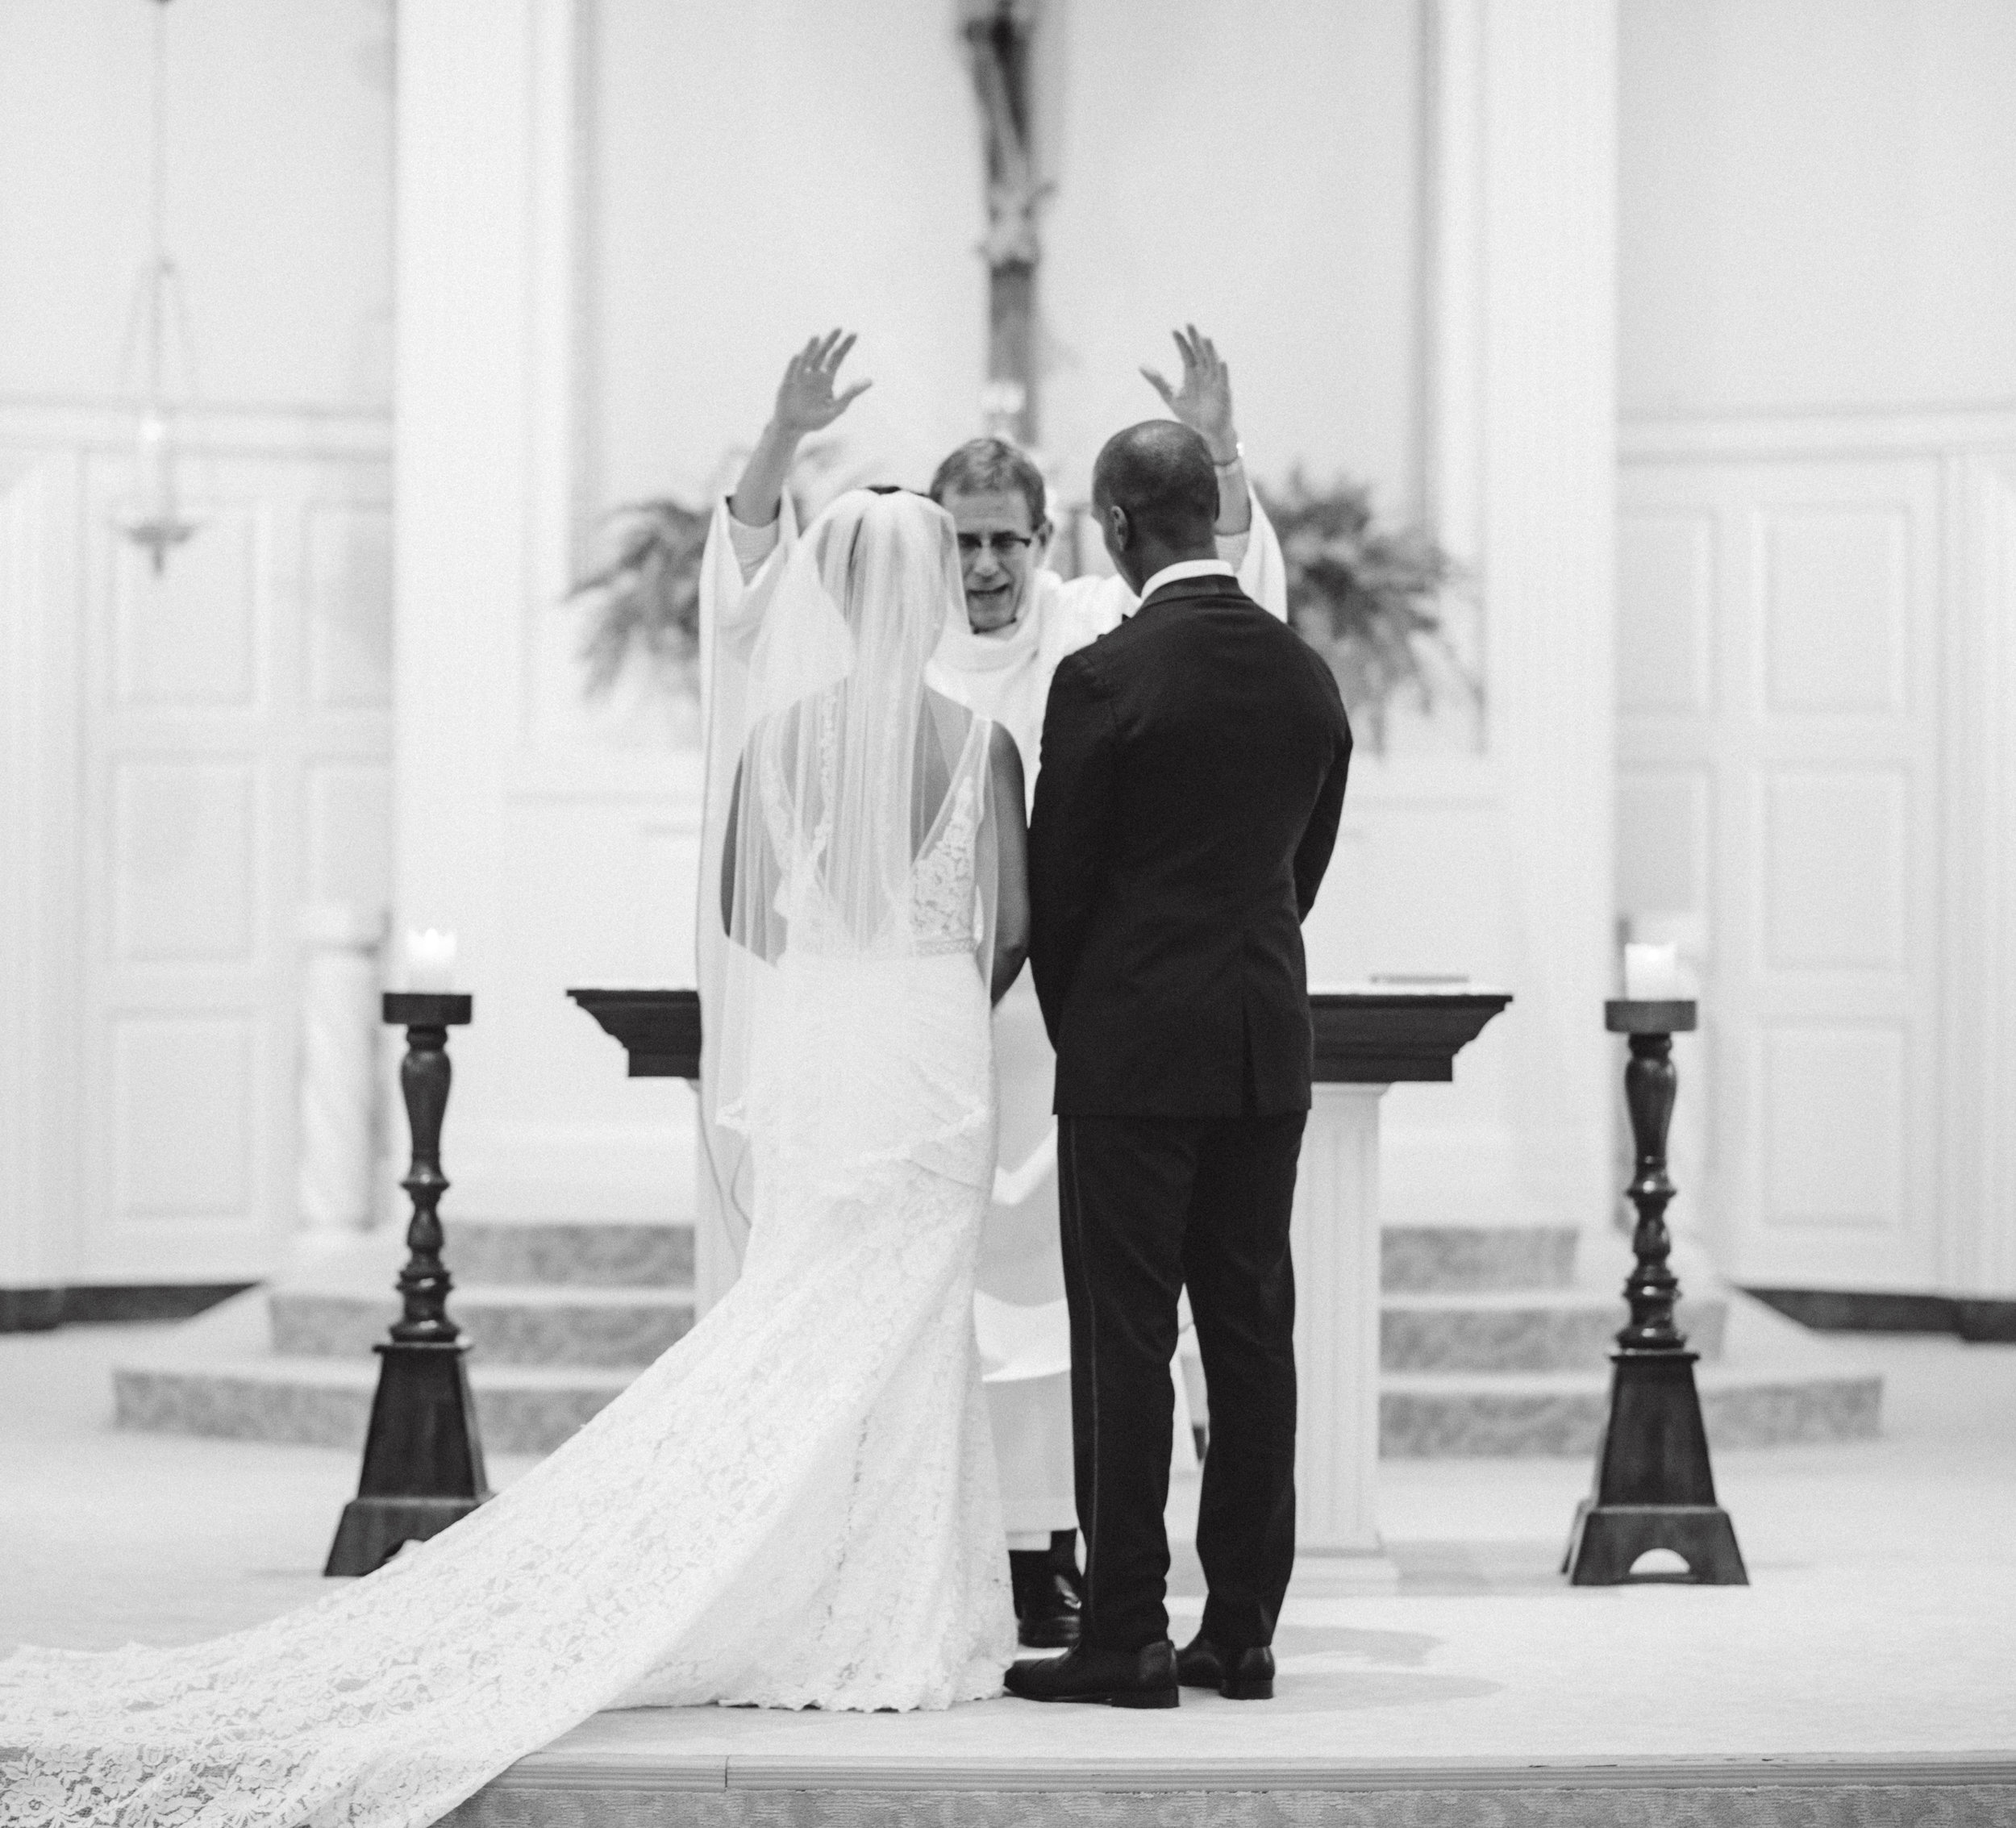 DANIELLE & BRANDON WEDDING - HEDGE ART GALLERY - NYC INTIMATE WEDDING PHOTOGRAPHER - CHI-CHI ARI-221.jpg